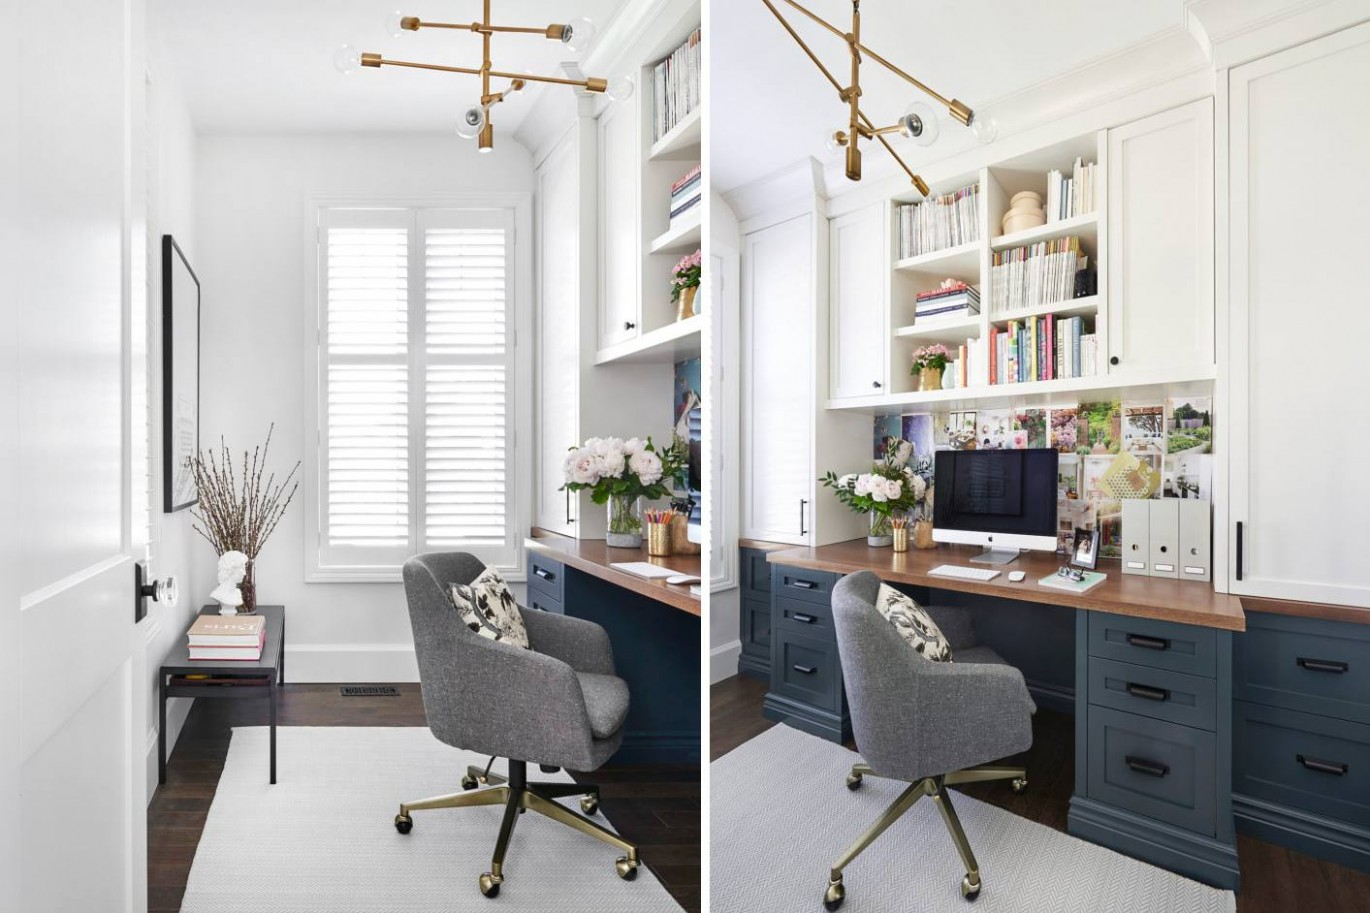 Small Home Office Ideas That Are Surprisingly Stylish - 10X10 Home Office Ideas